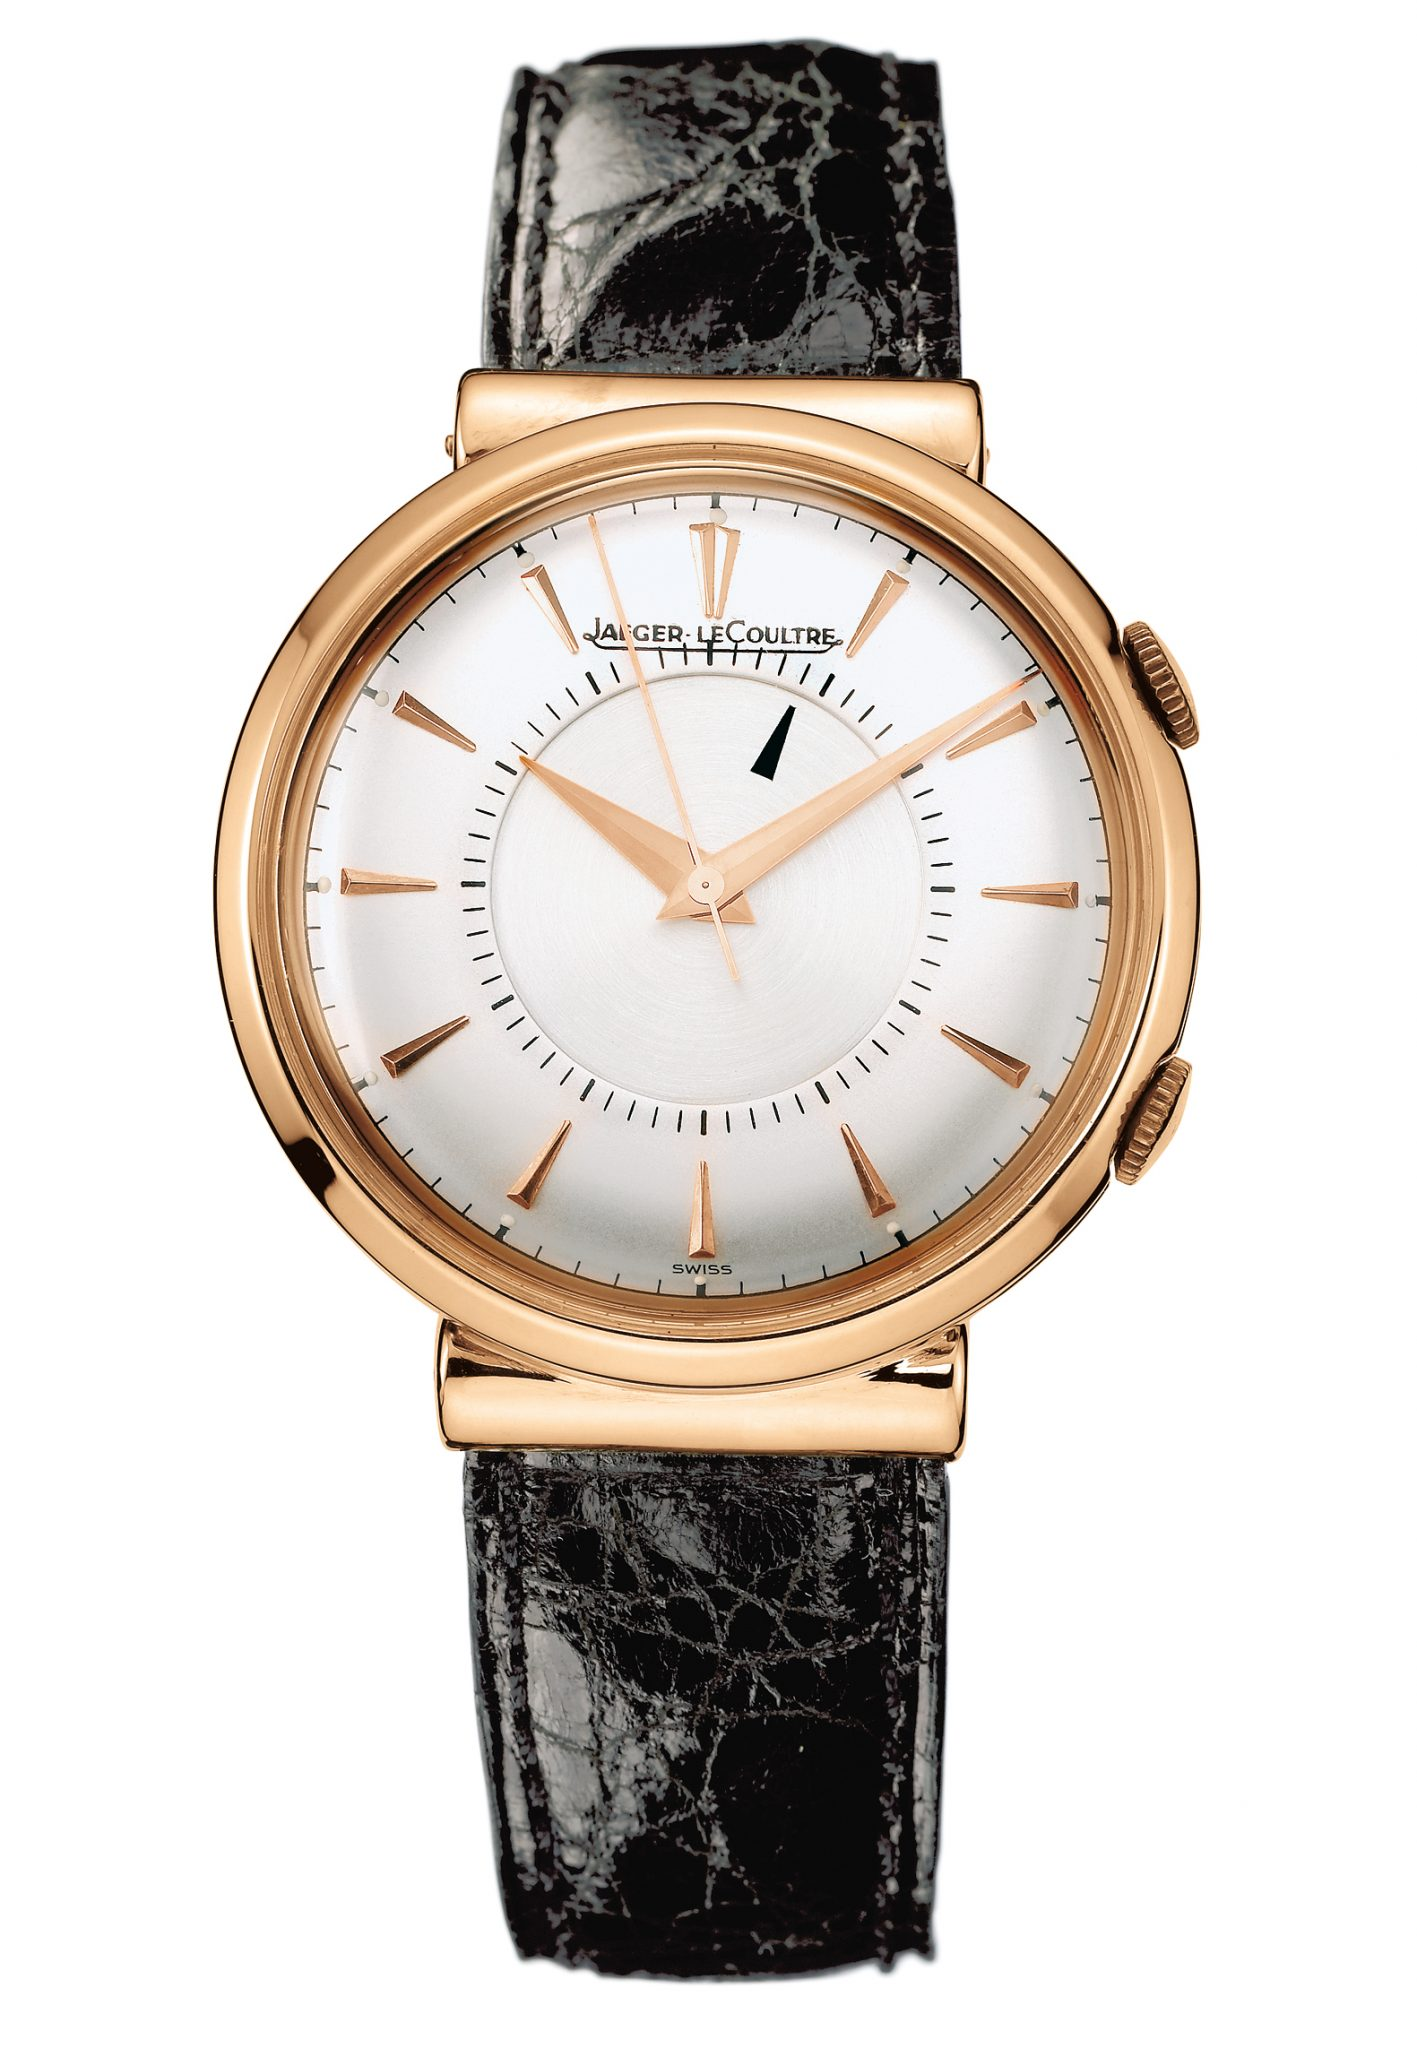 The first Jaeger-LeCoultre Memovox watch made in 1950 alarm watch automatic watch